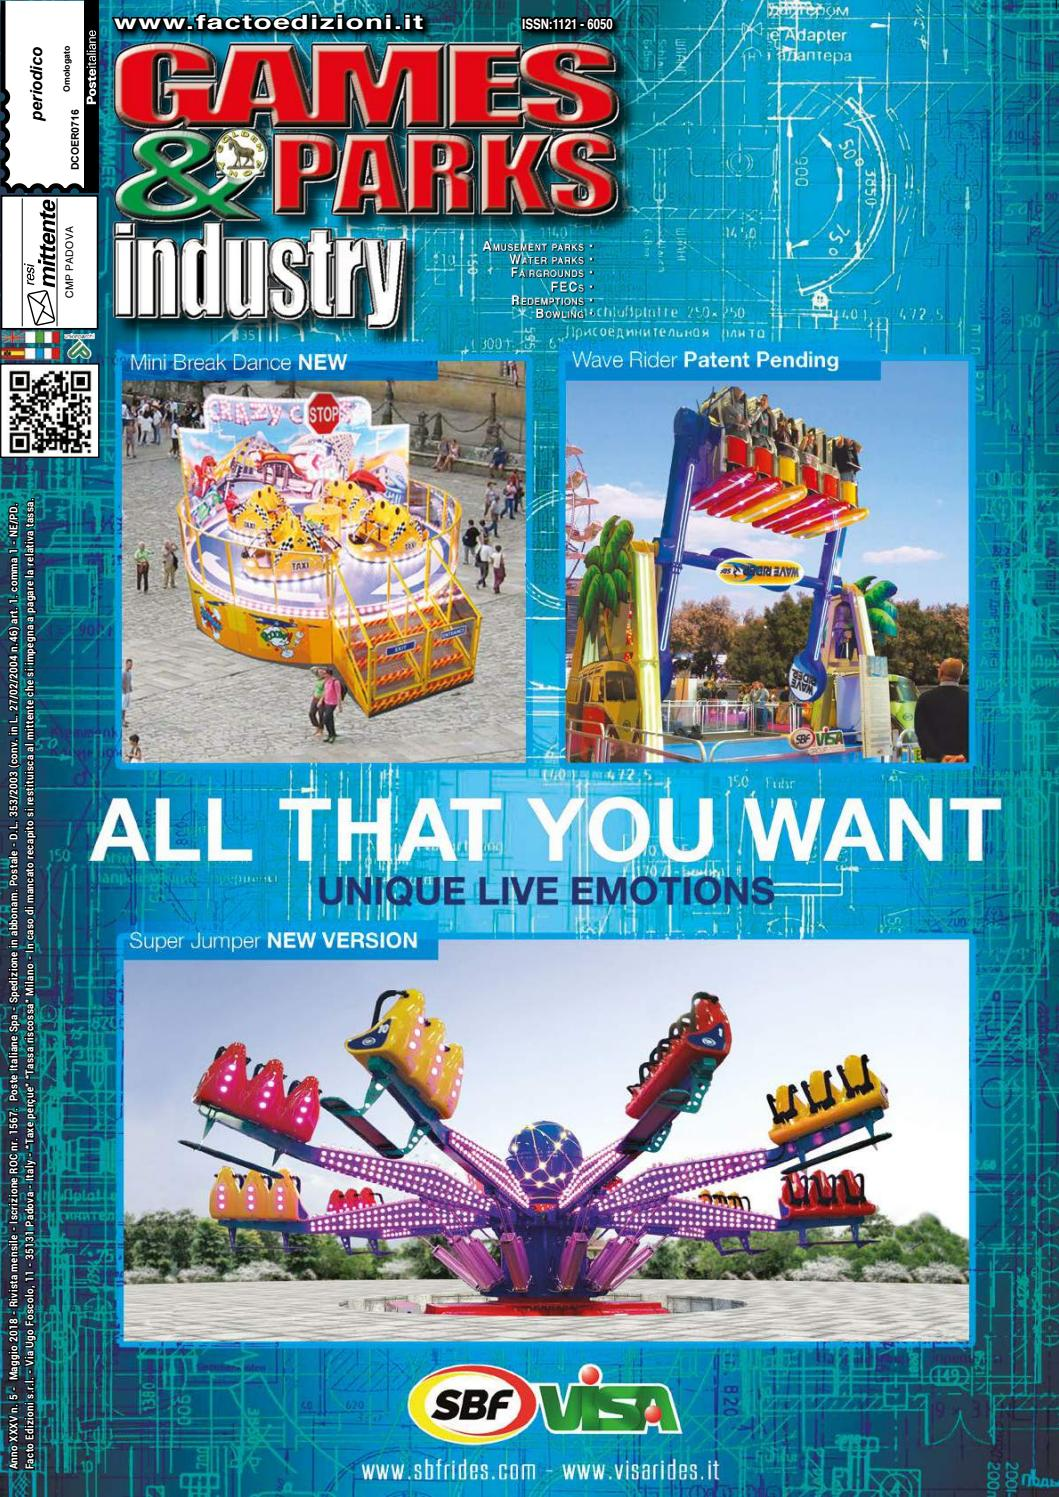 By Parks May Industry amp; 2018 Games Issuu qBaf8wf